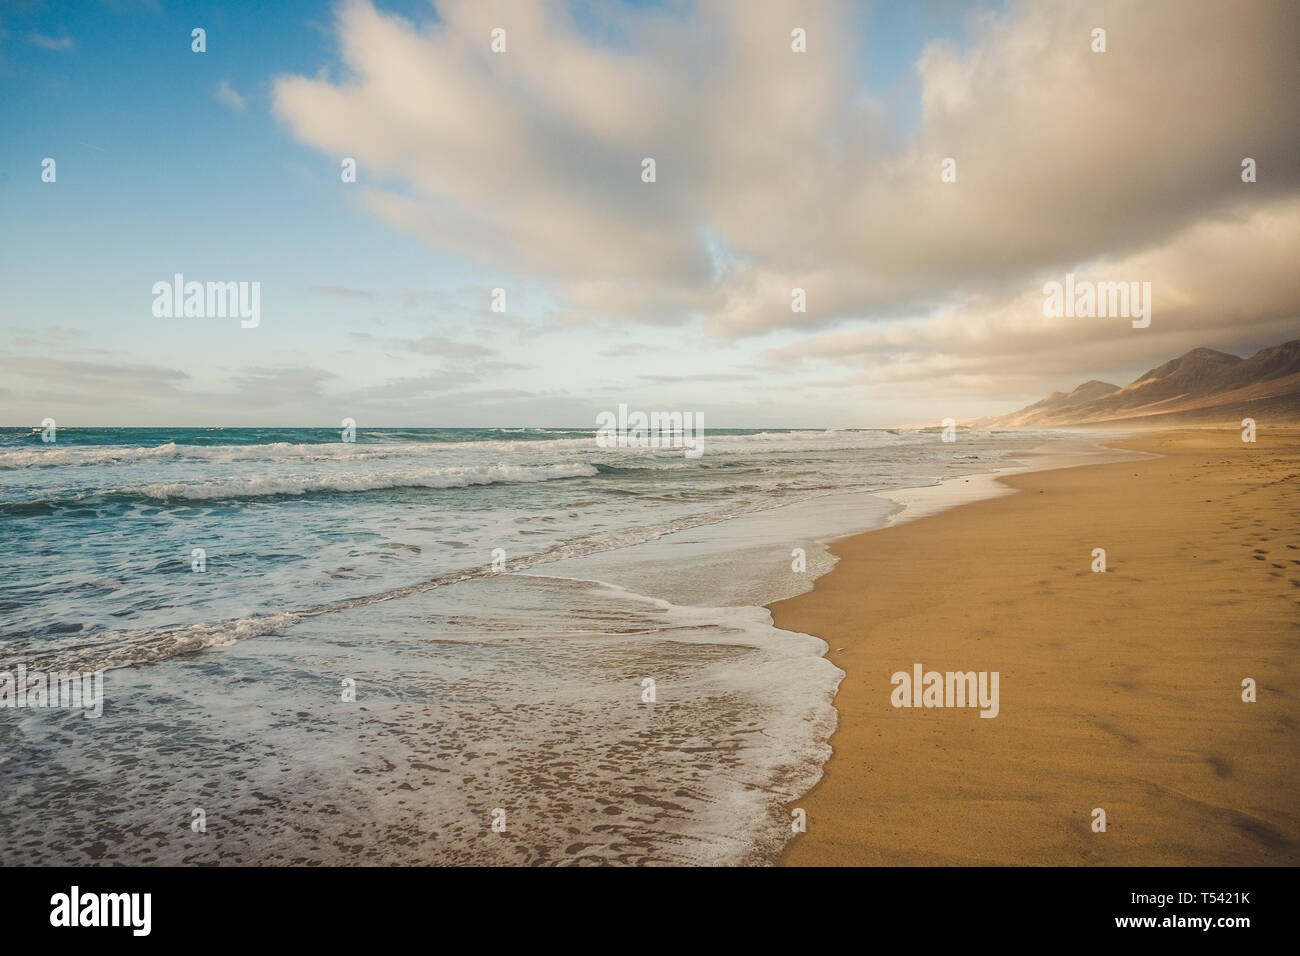 Lonely beach with beautiful mountain background  with cloudy sky - summer tropical vacation concept in free sandy scenic place with nobody there Stock Photo